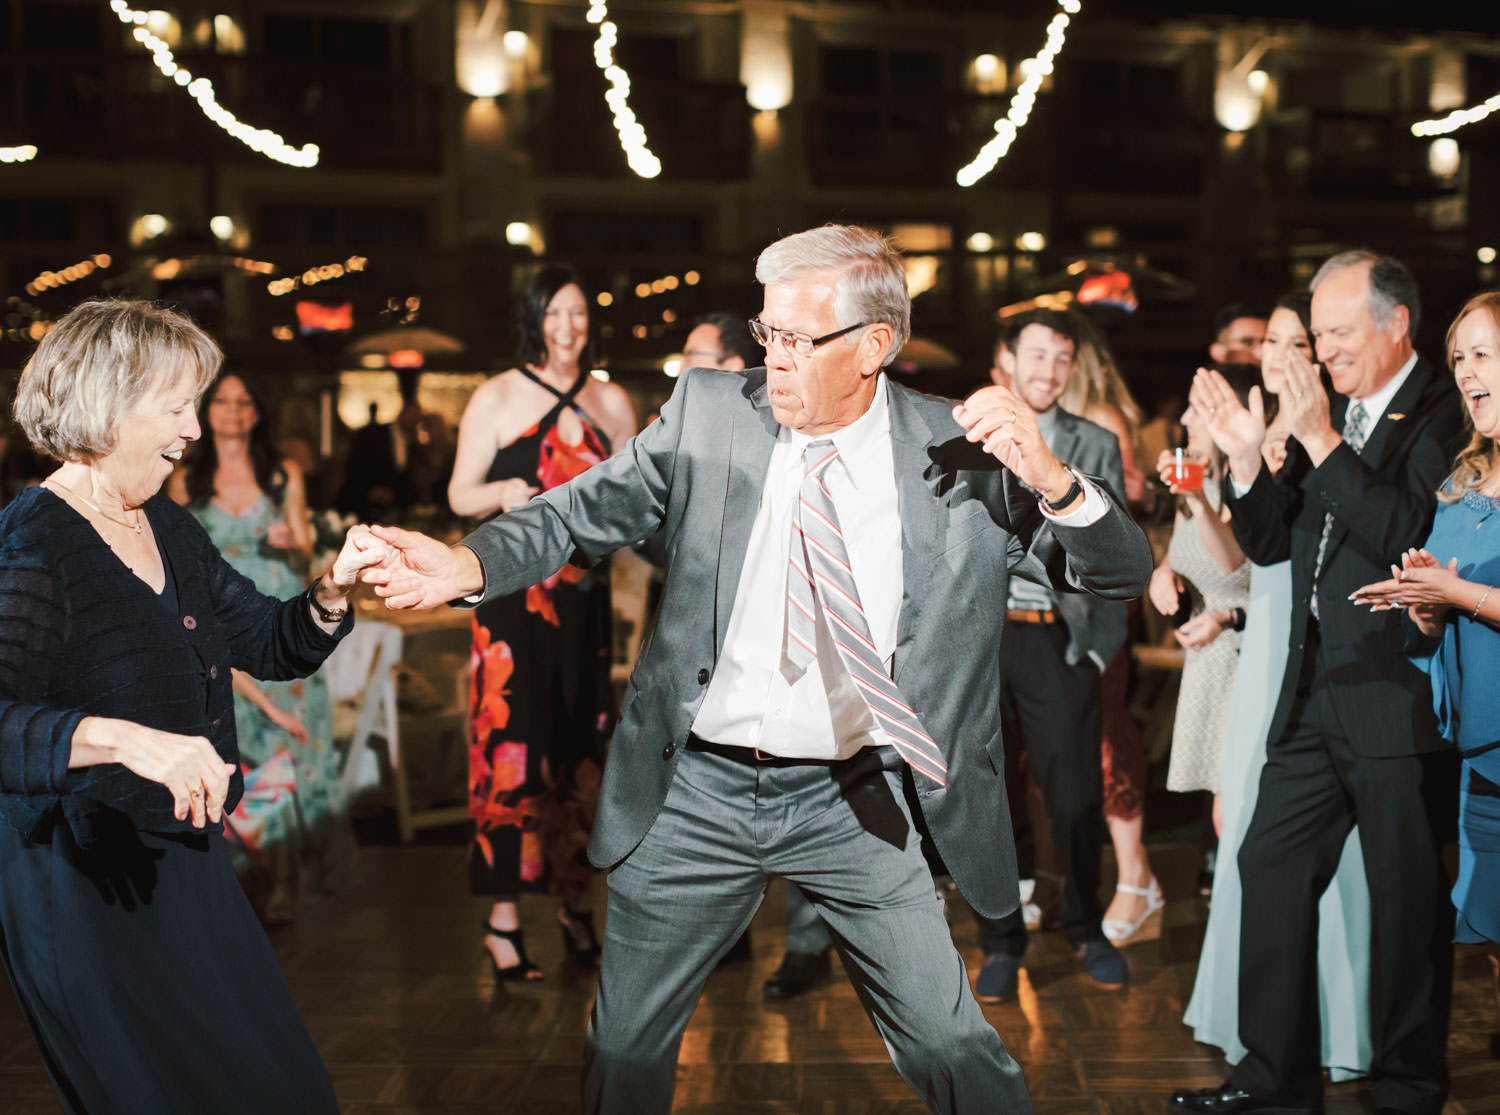 Older guests dancing during a wedding reception at Humphreys Half Moon Inn by Cavin Elizabeth Photography